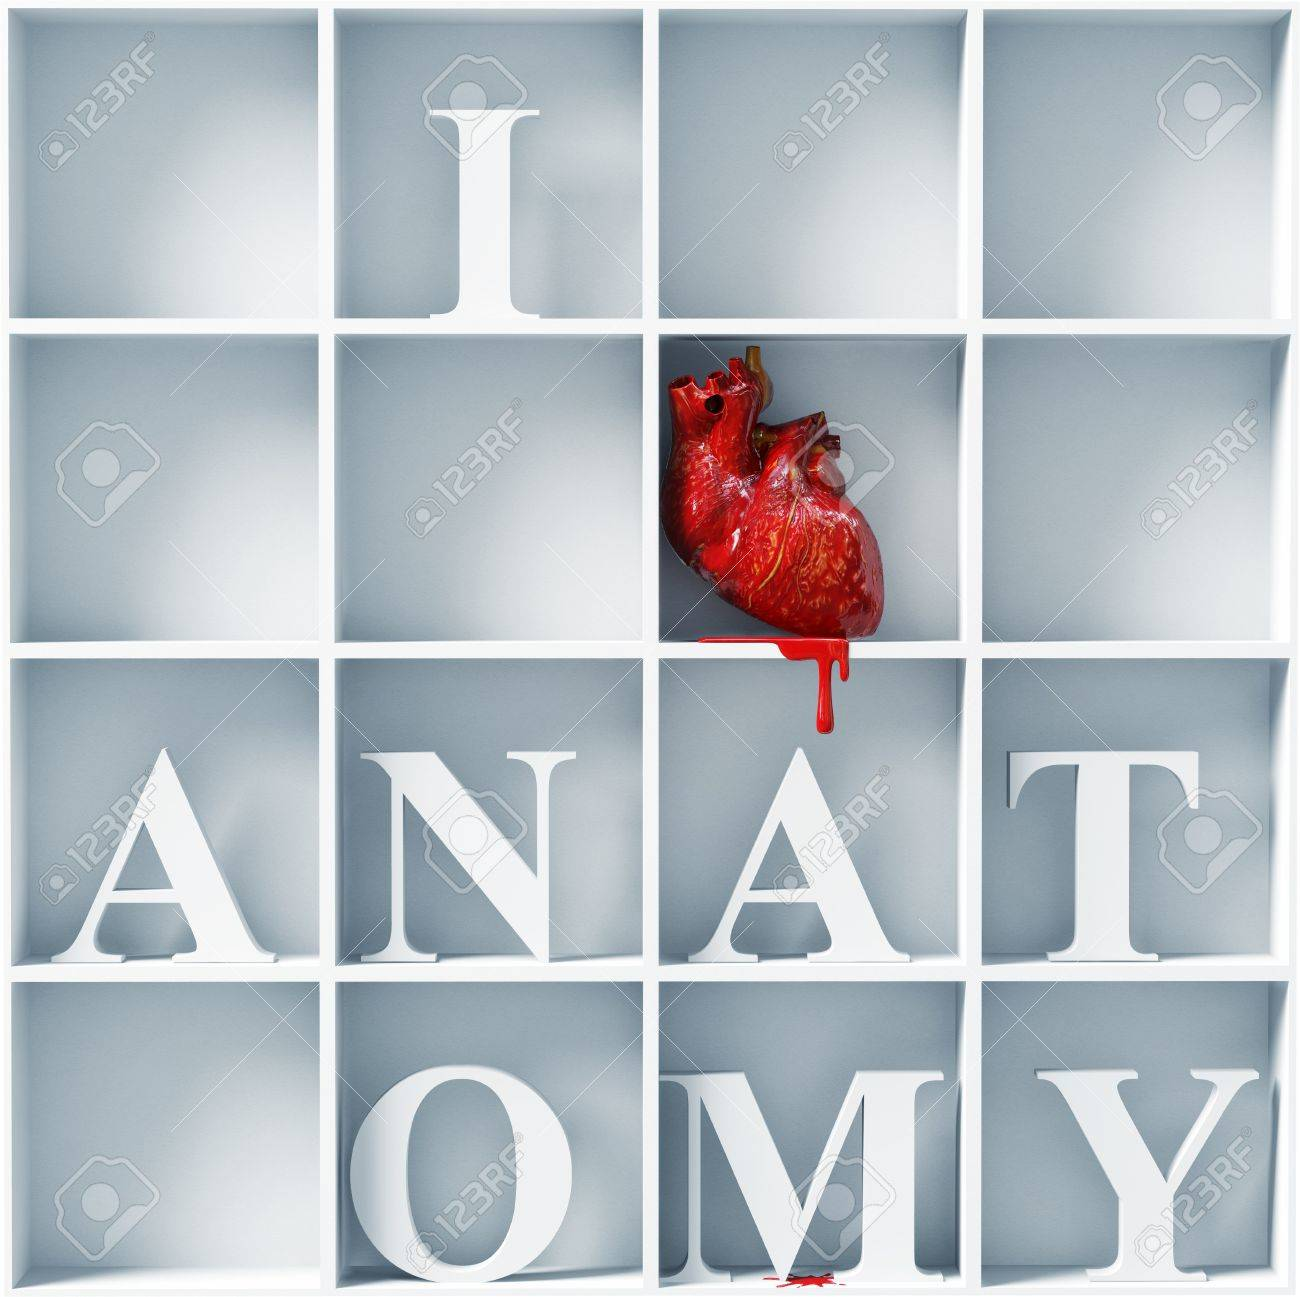 I Love Anatomy Bizarre Style Message 3d Concept Stock Photo